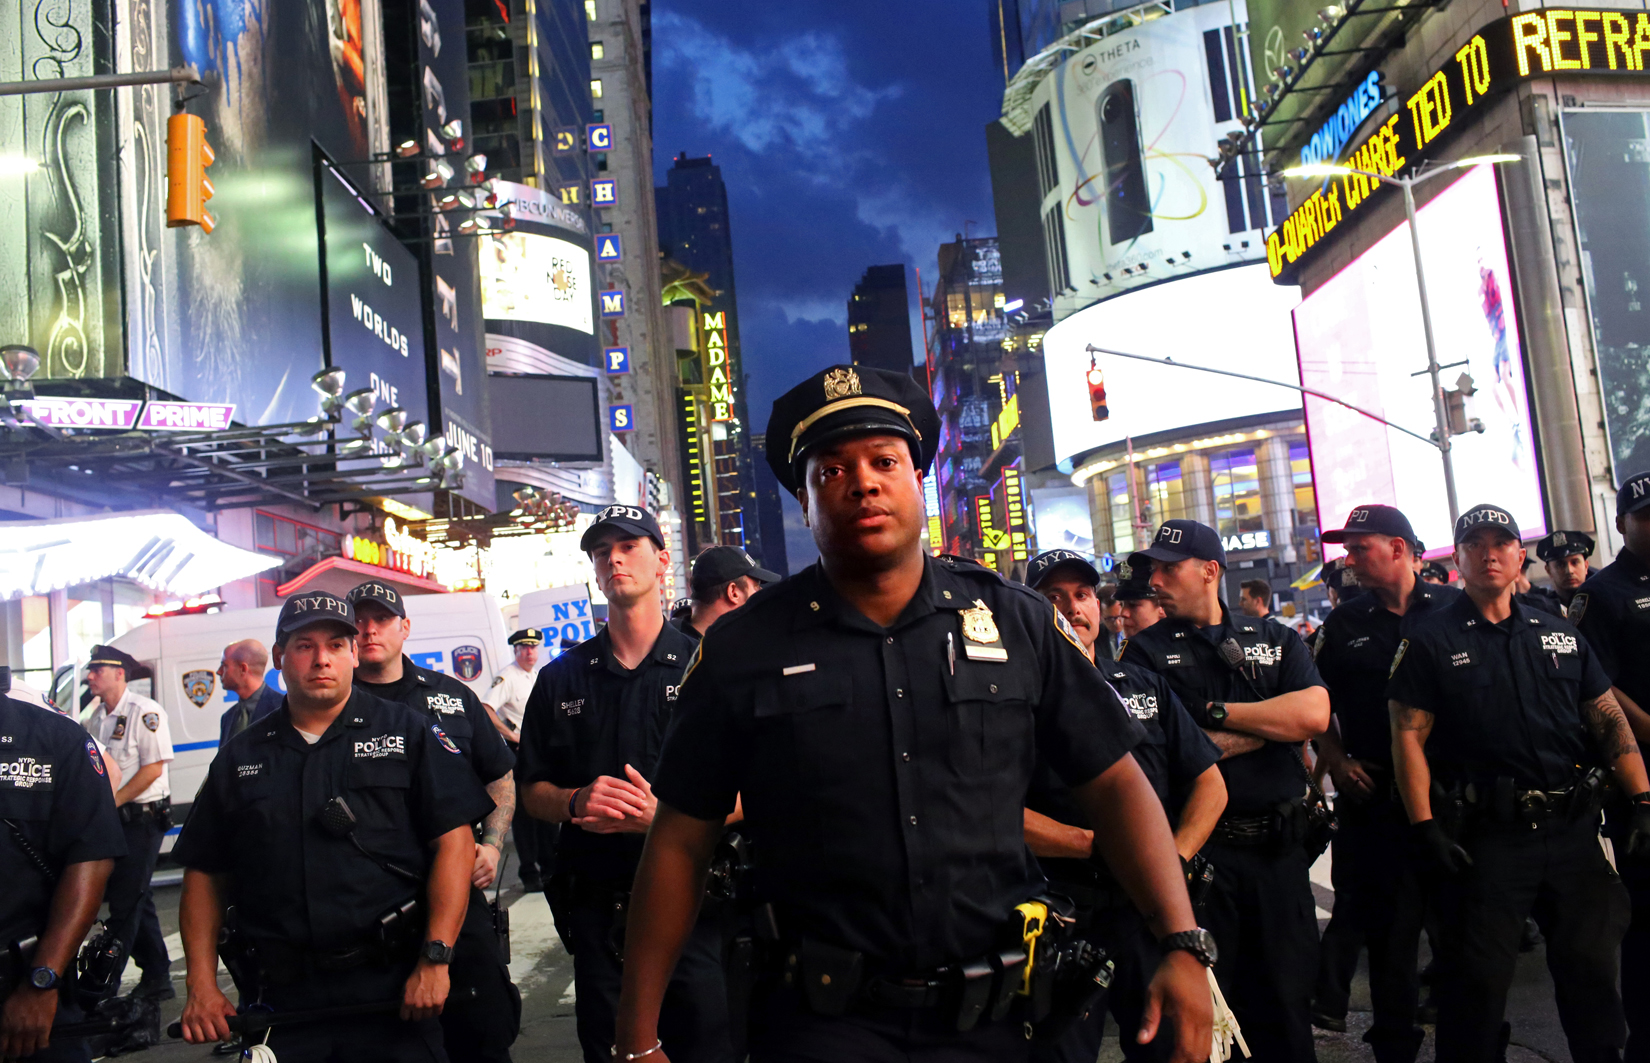 Police watch activists protest in Times Square in response to the recent fatal shootings of two black men by police, July 7, 2016 in New York, NY. Protests and public outcry have grown in the days following the deaths of Alton Sterling on July 5, 2016 in Baton Rouge, Louisiana and Philando Castile on July 6, 2016, in Falcon Heights, Minnesota. (For Getty Images)